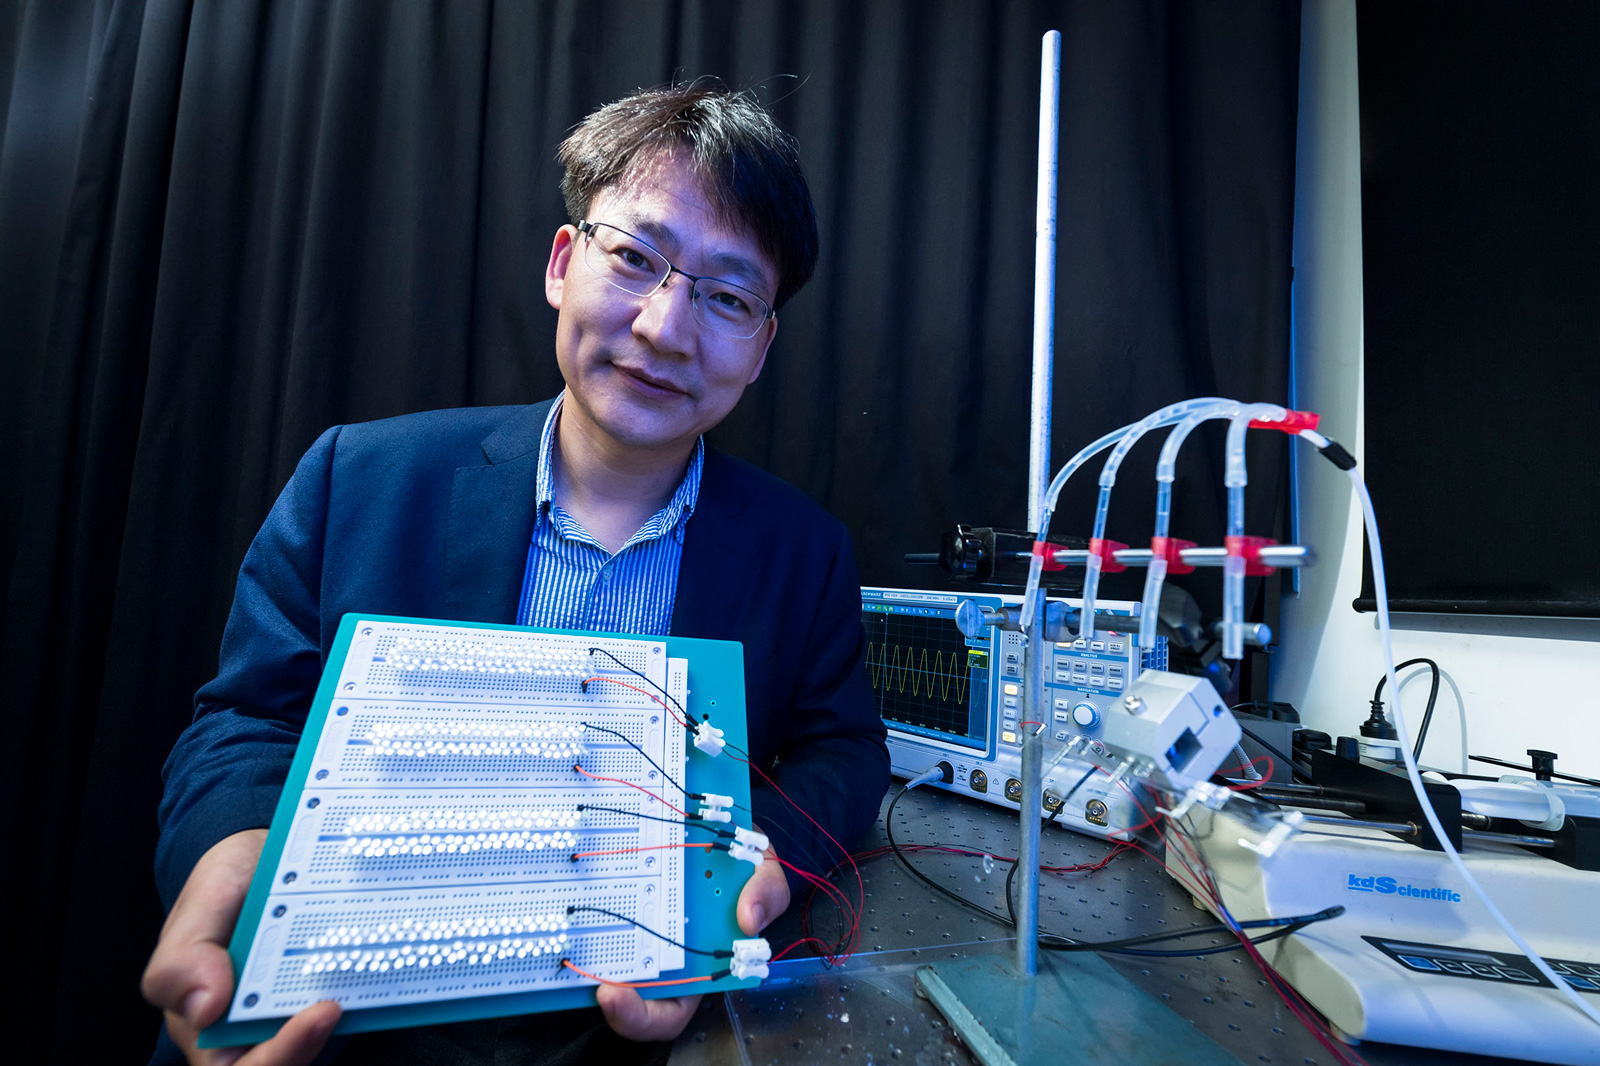 Professor Wang Zuankai of CityU won the 2020 Xplorer Prize organised by the Tencent Foundation.